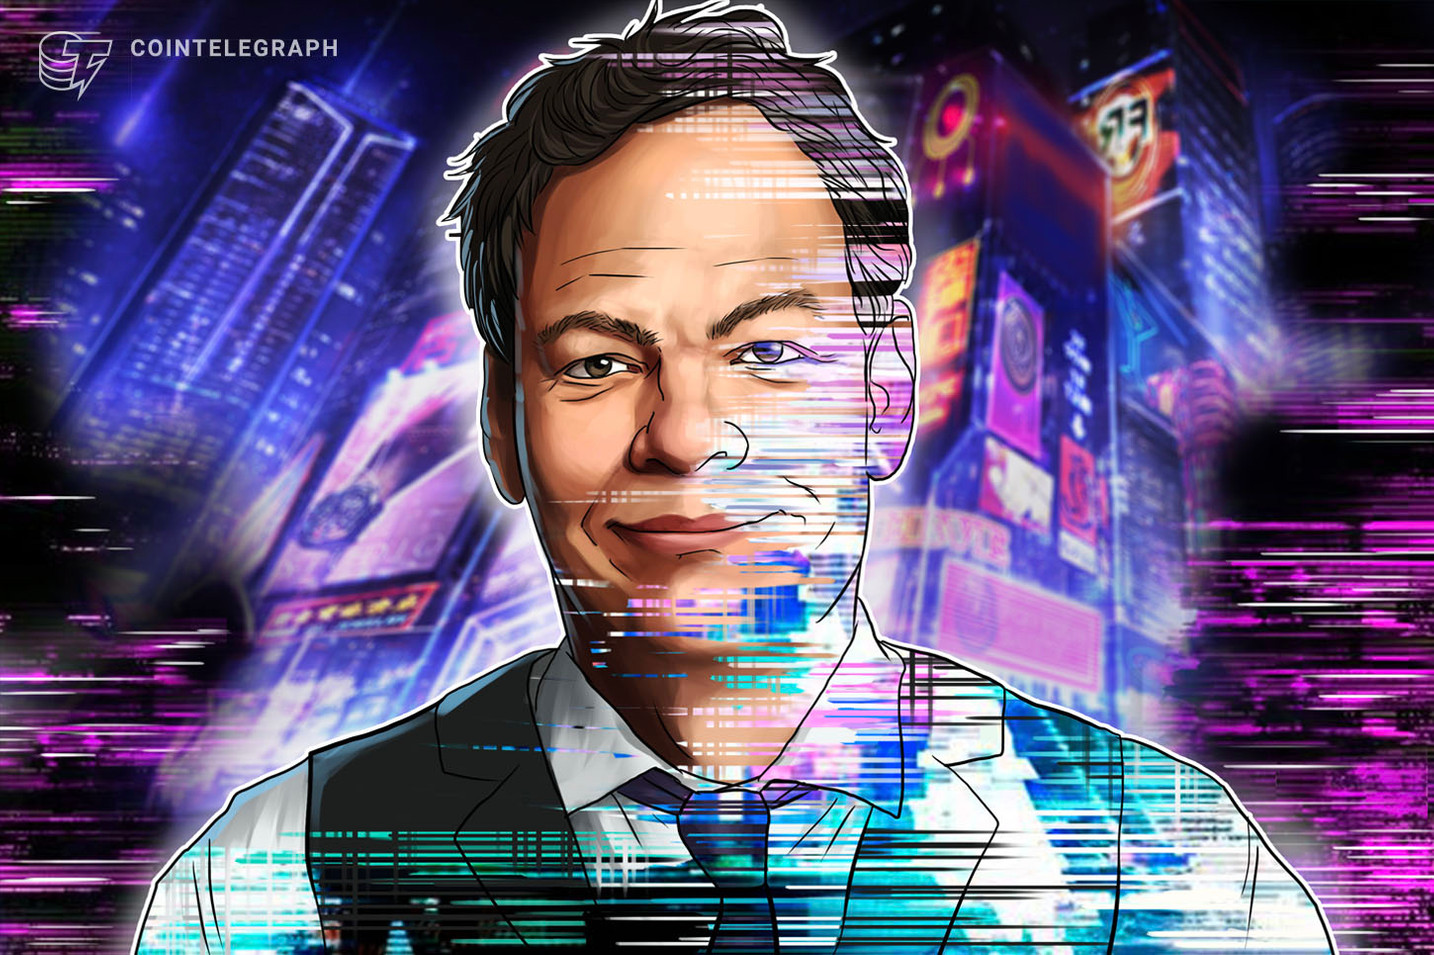 Earth needs Bitcoin as economy hits 'debt saturation point' — Keiser